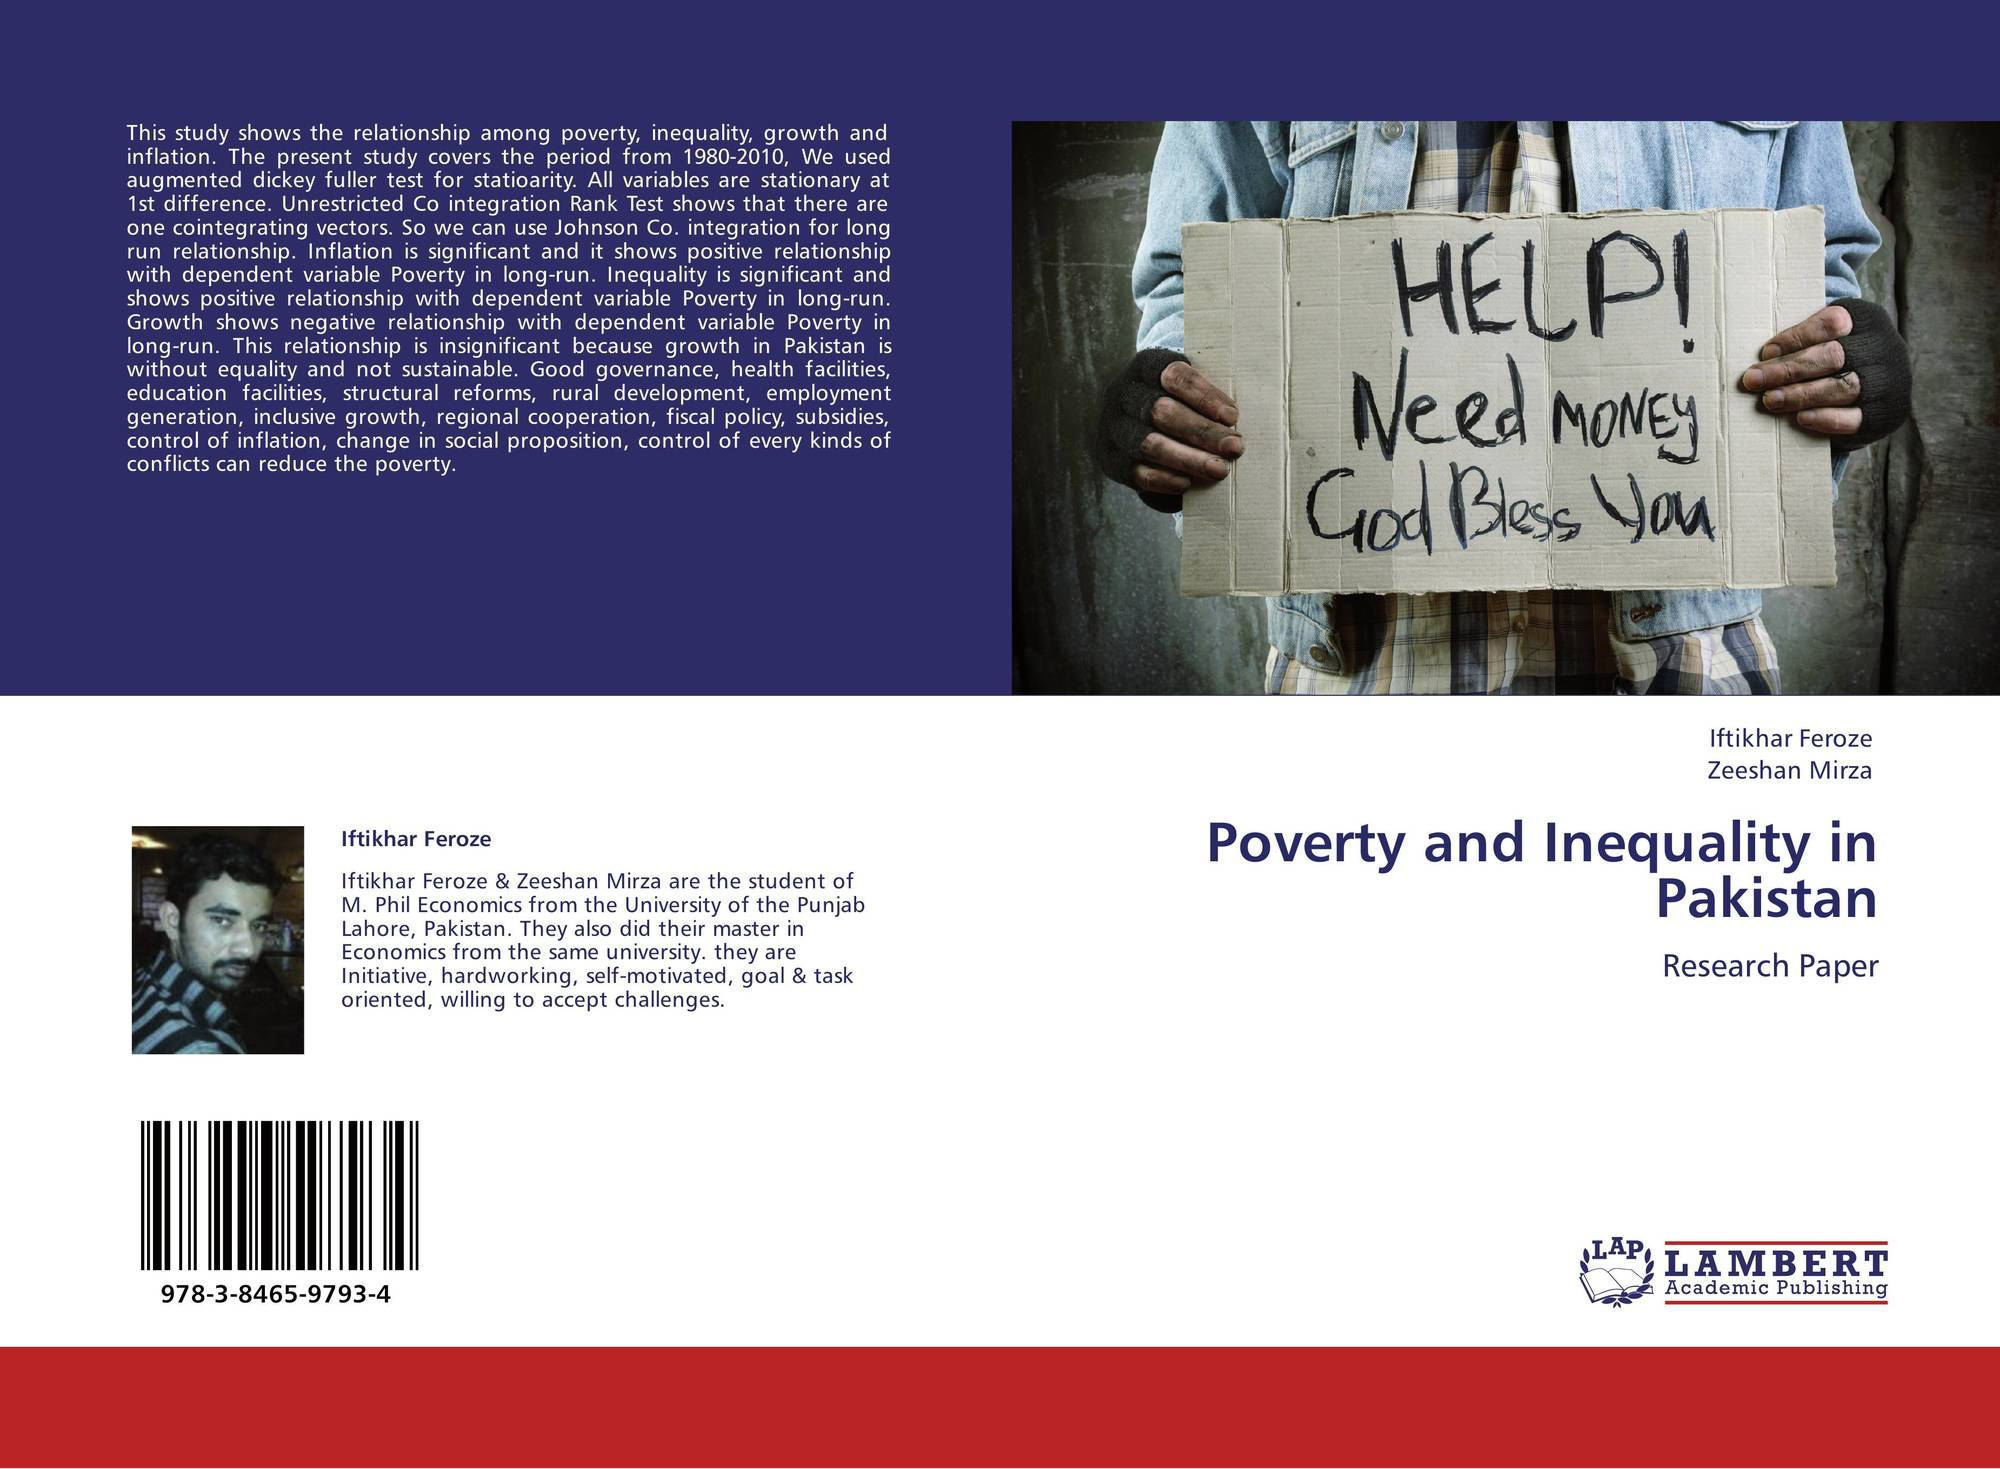 poverty in pakistan research paper Muslim states - bangladesh and pakistan - alone account for 122 million each living below the poverty line where as 100 million muslims of india are also living below the poverty line (irti, 2007, p18.